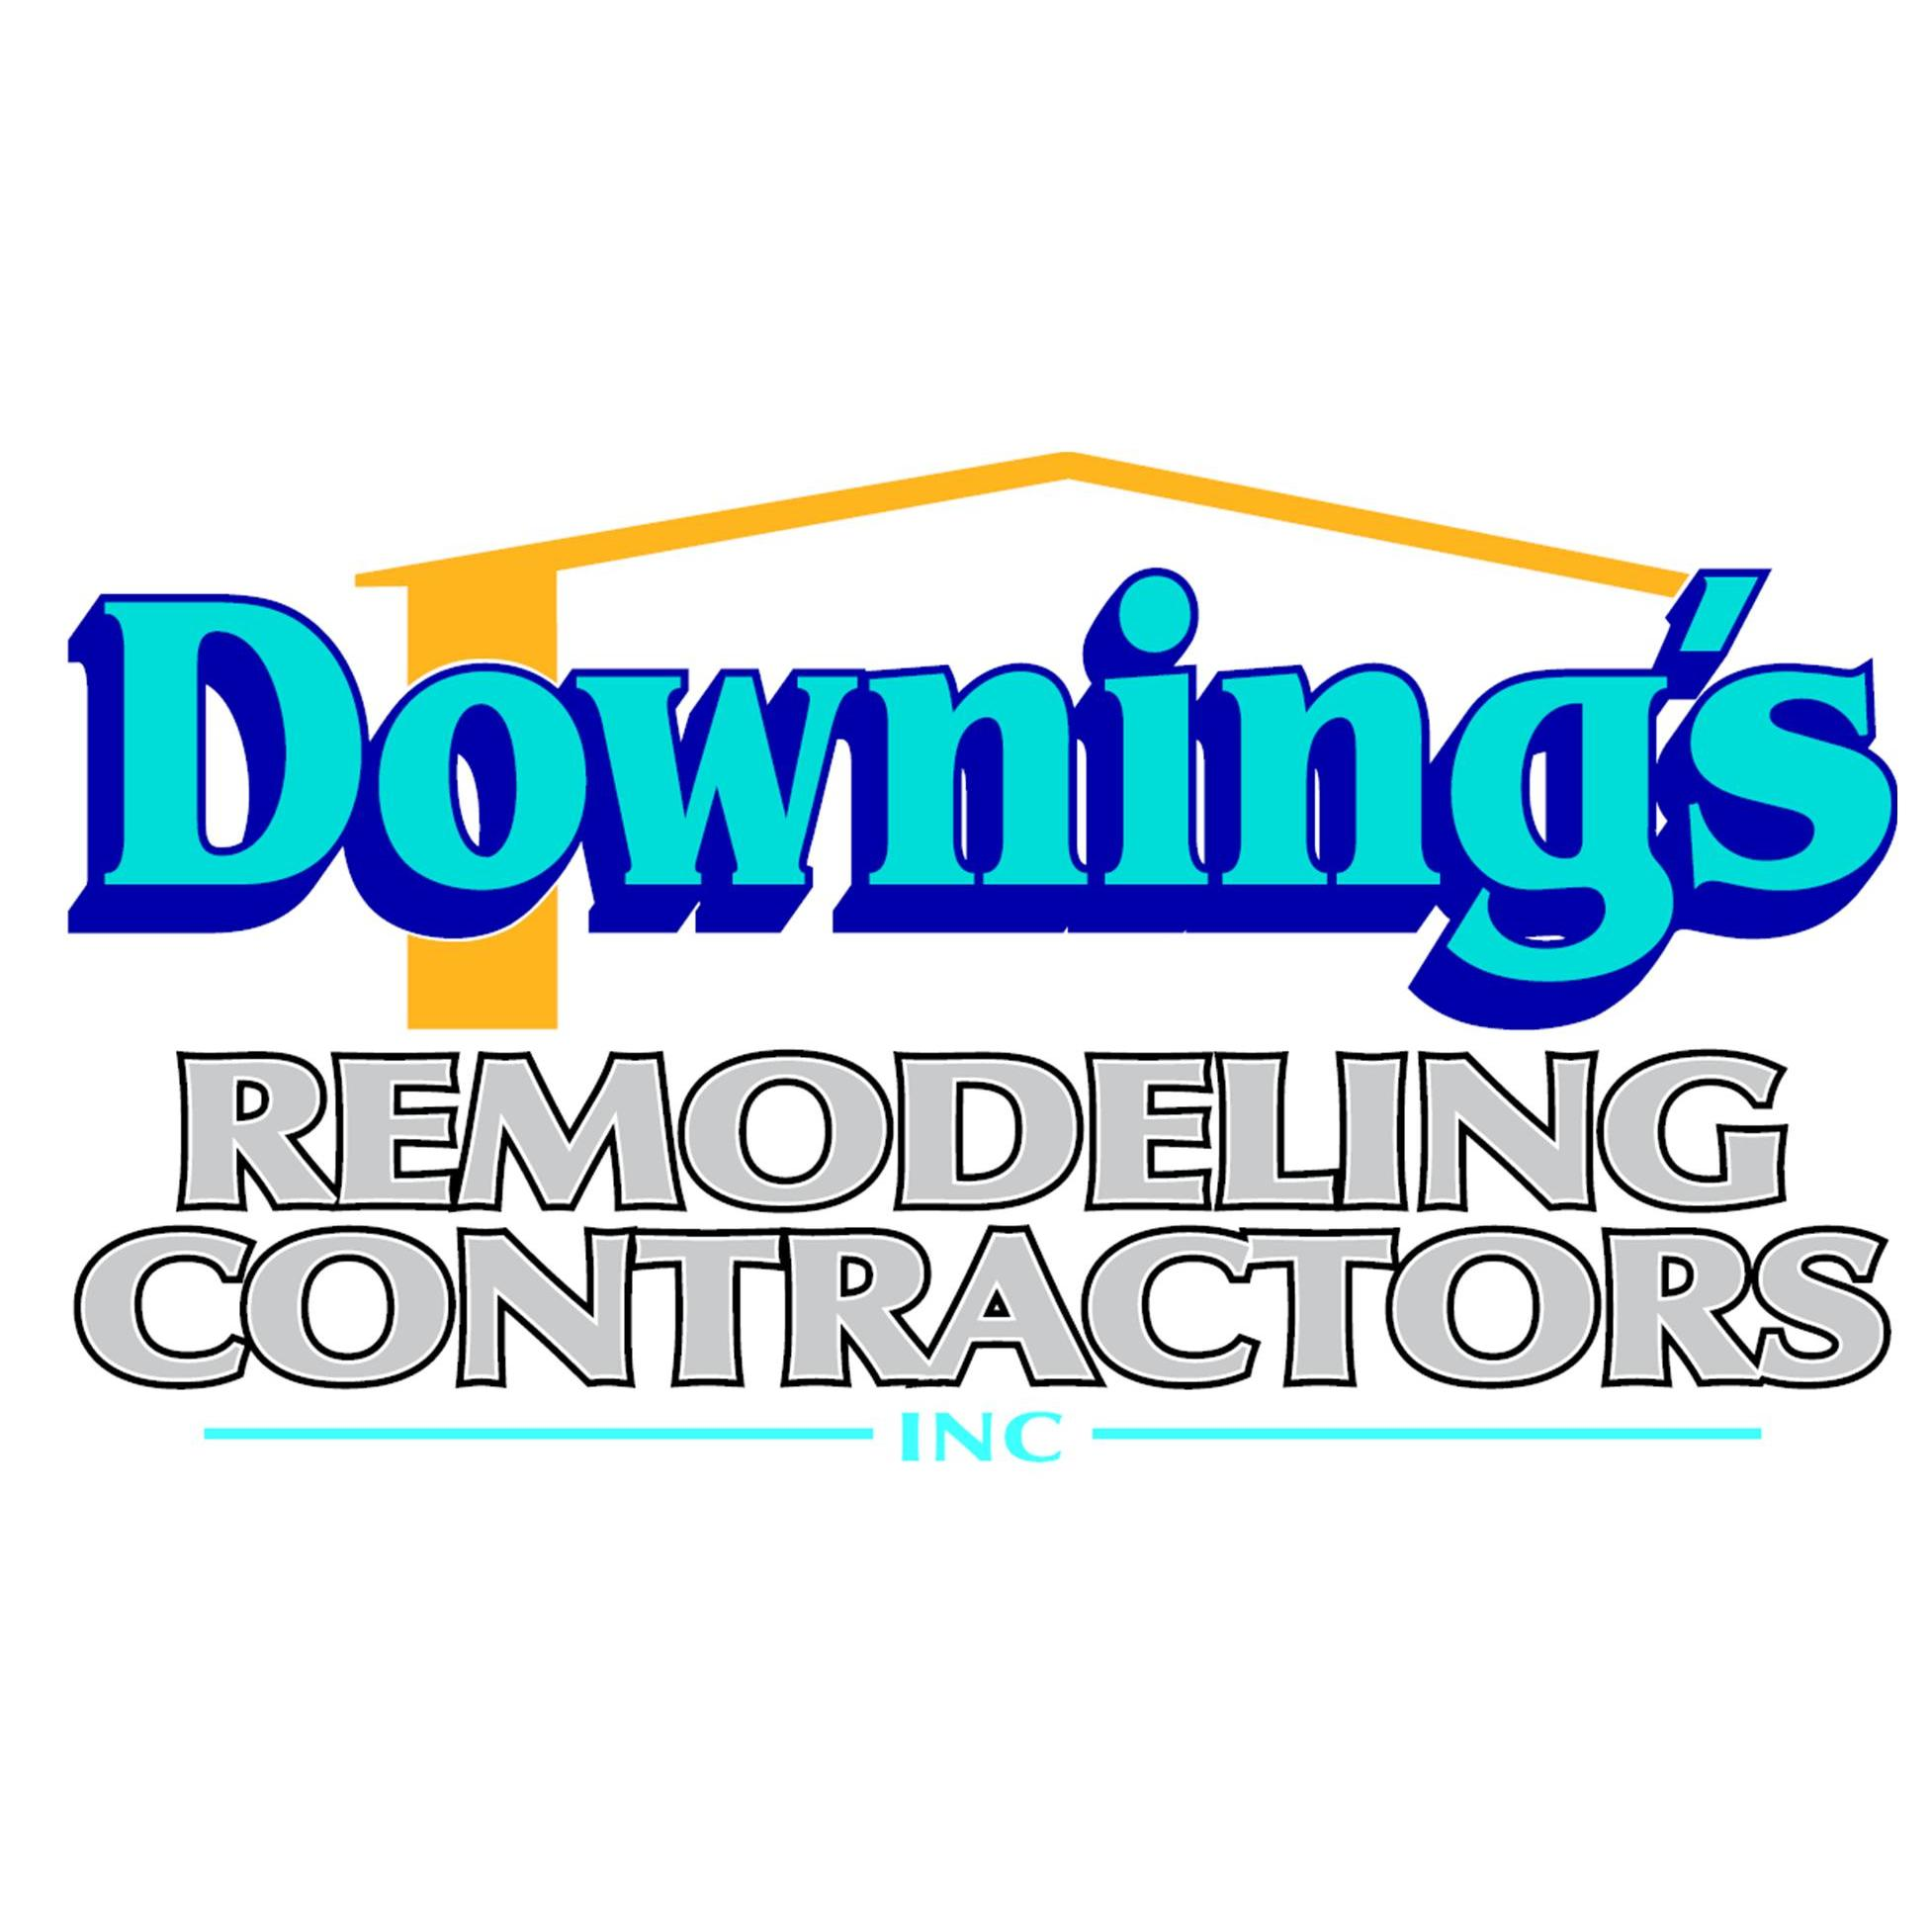 Downings Remodeling Contractors image 10